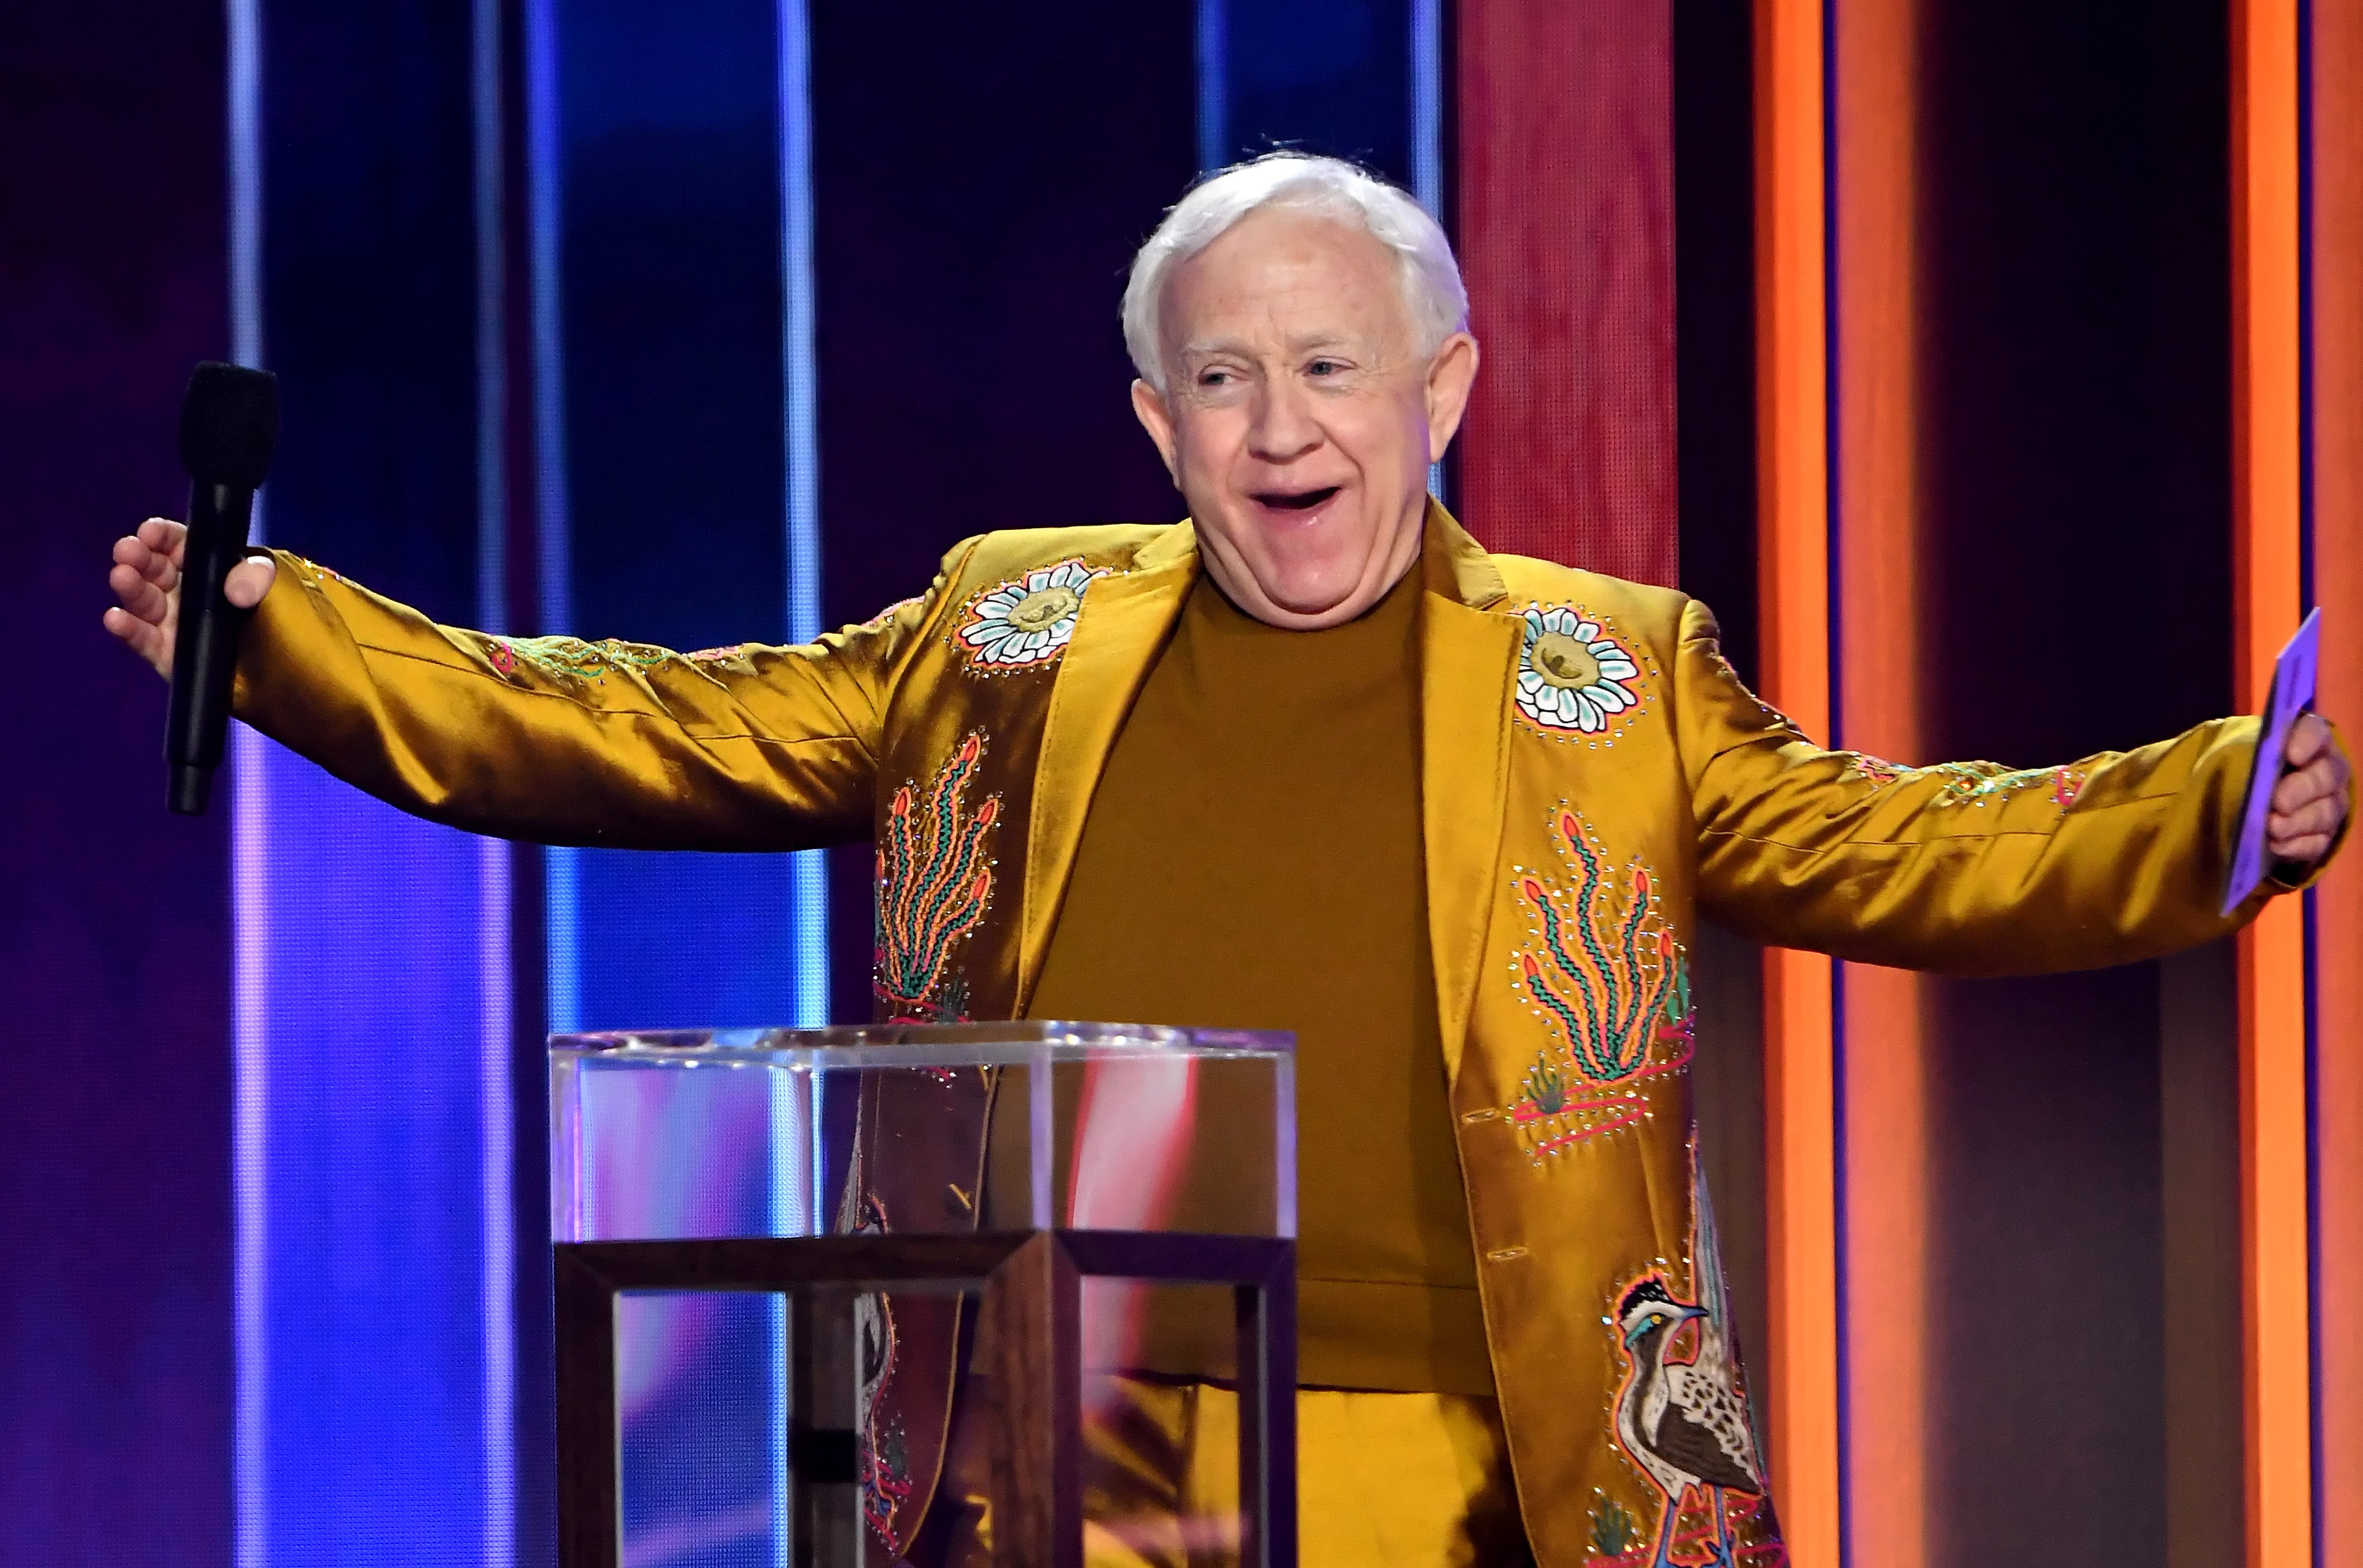 Leslie Jordan pictured at the 56th Academy of Country Music Awards at the Grand Ole Opry, 2021, Nashville, Tennessee.